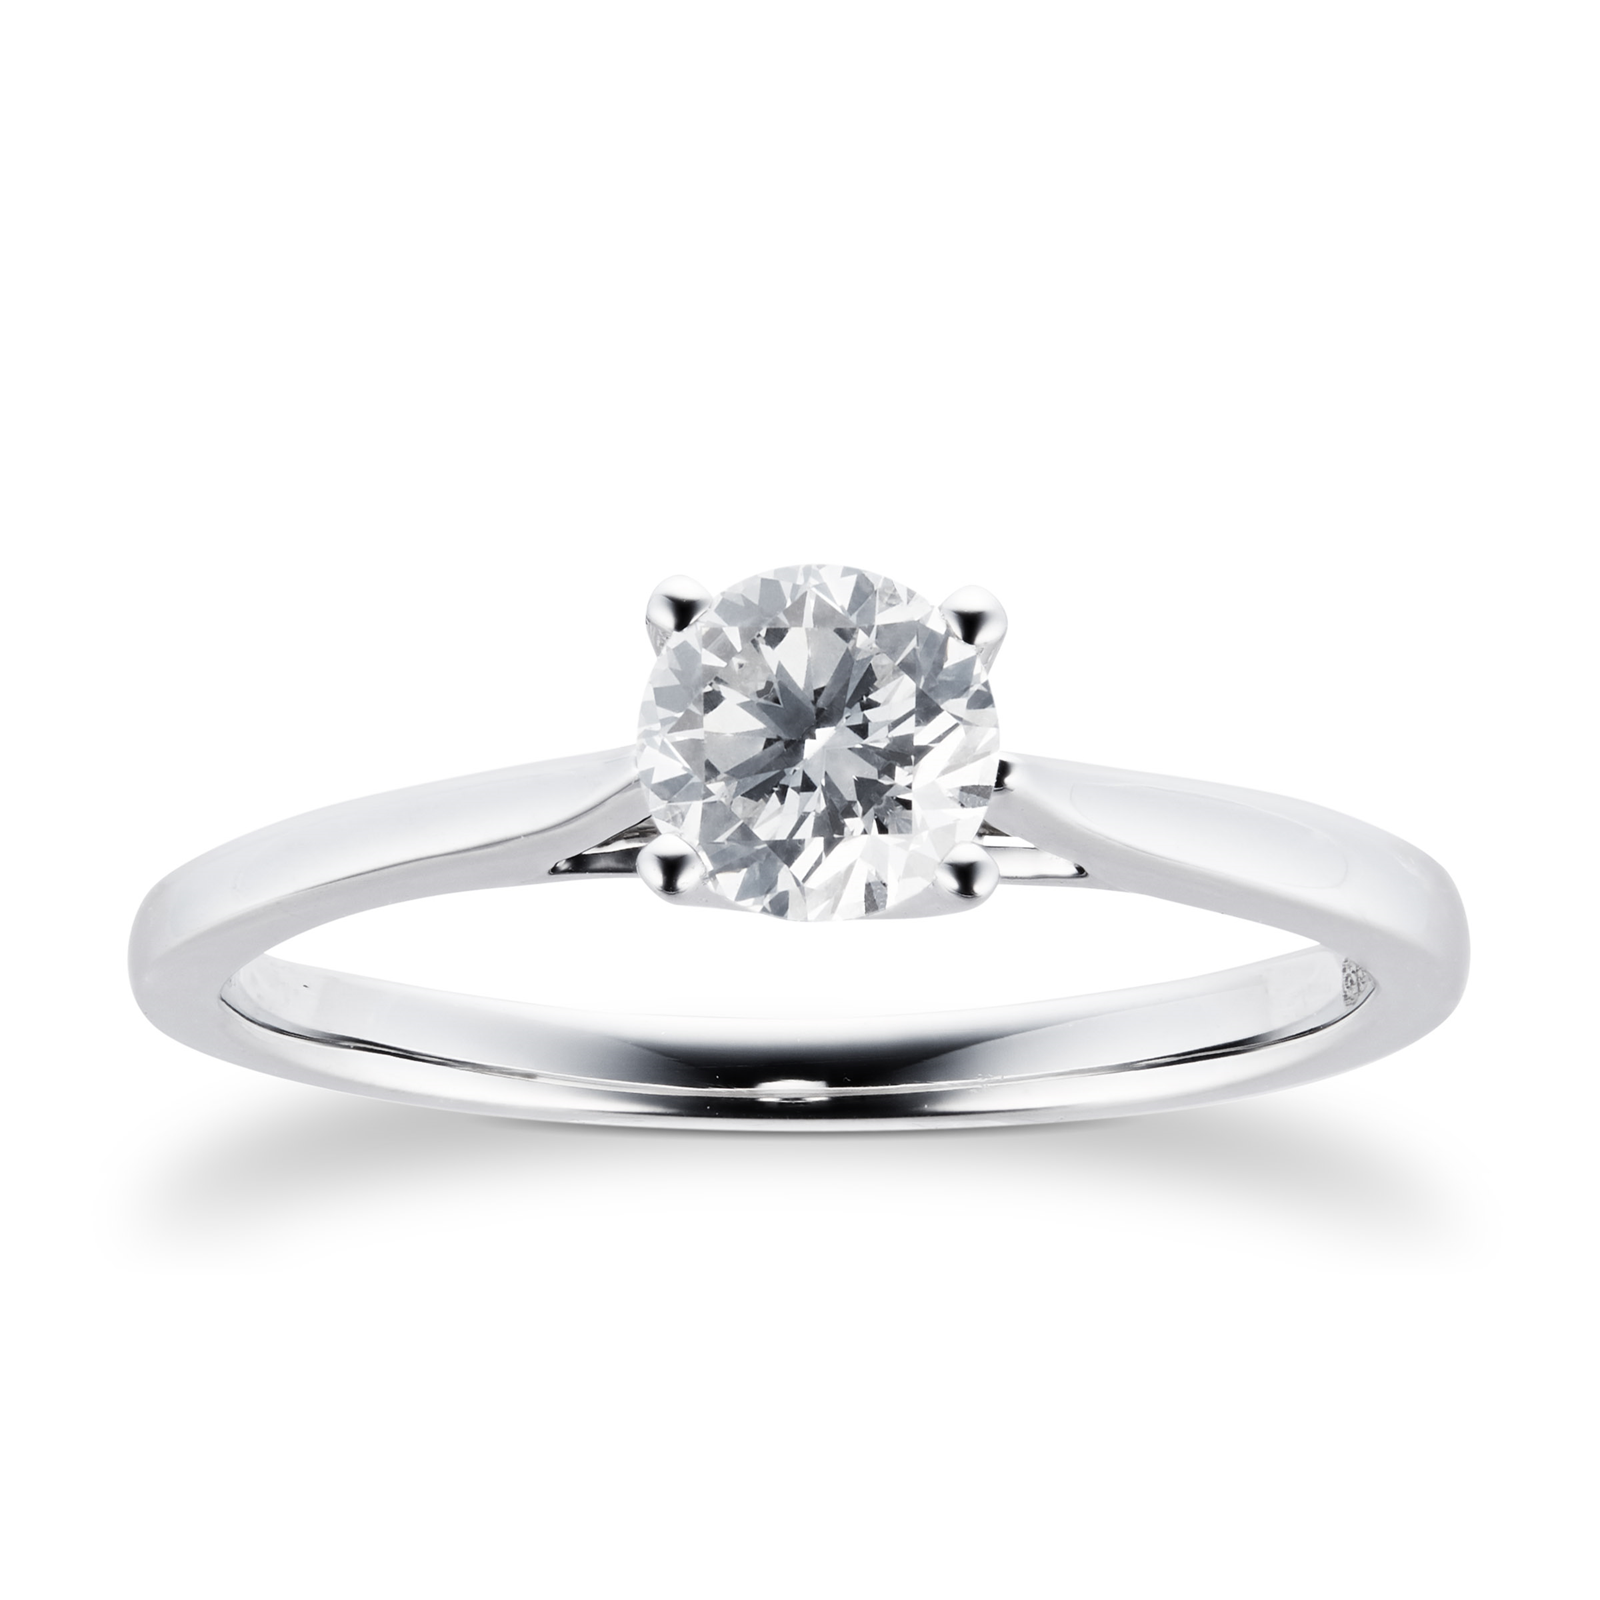 Platinum Brilliant Cut 0.50 Carat 88 Facet Diamond Ring